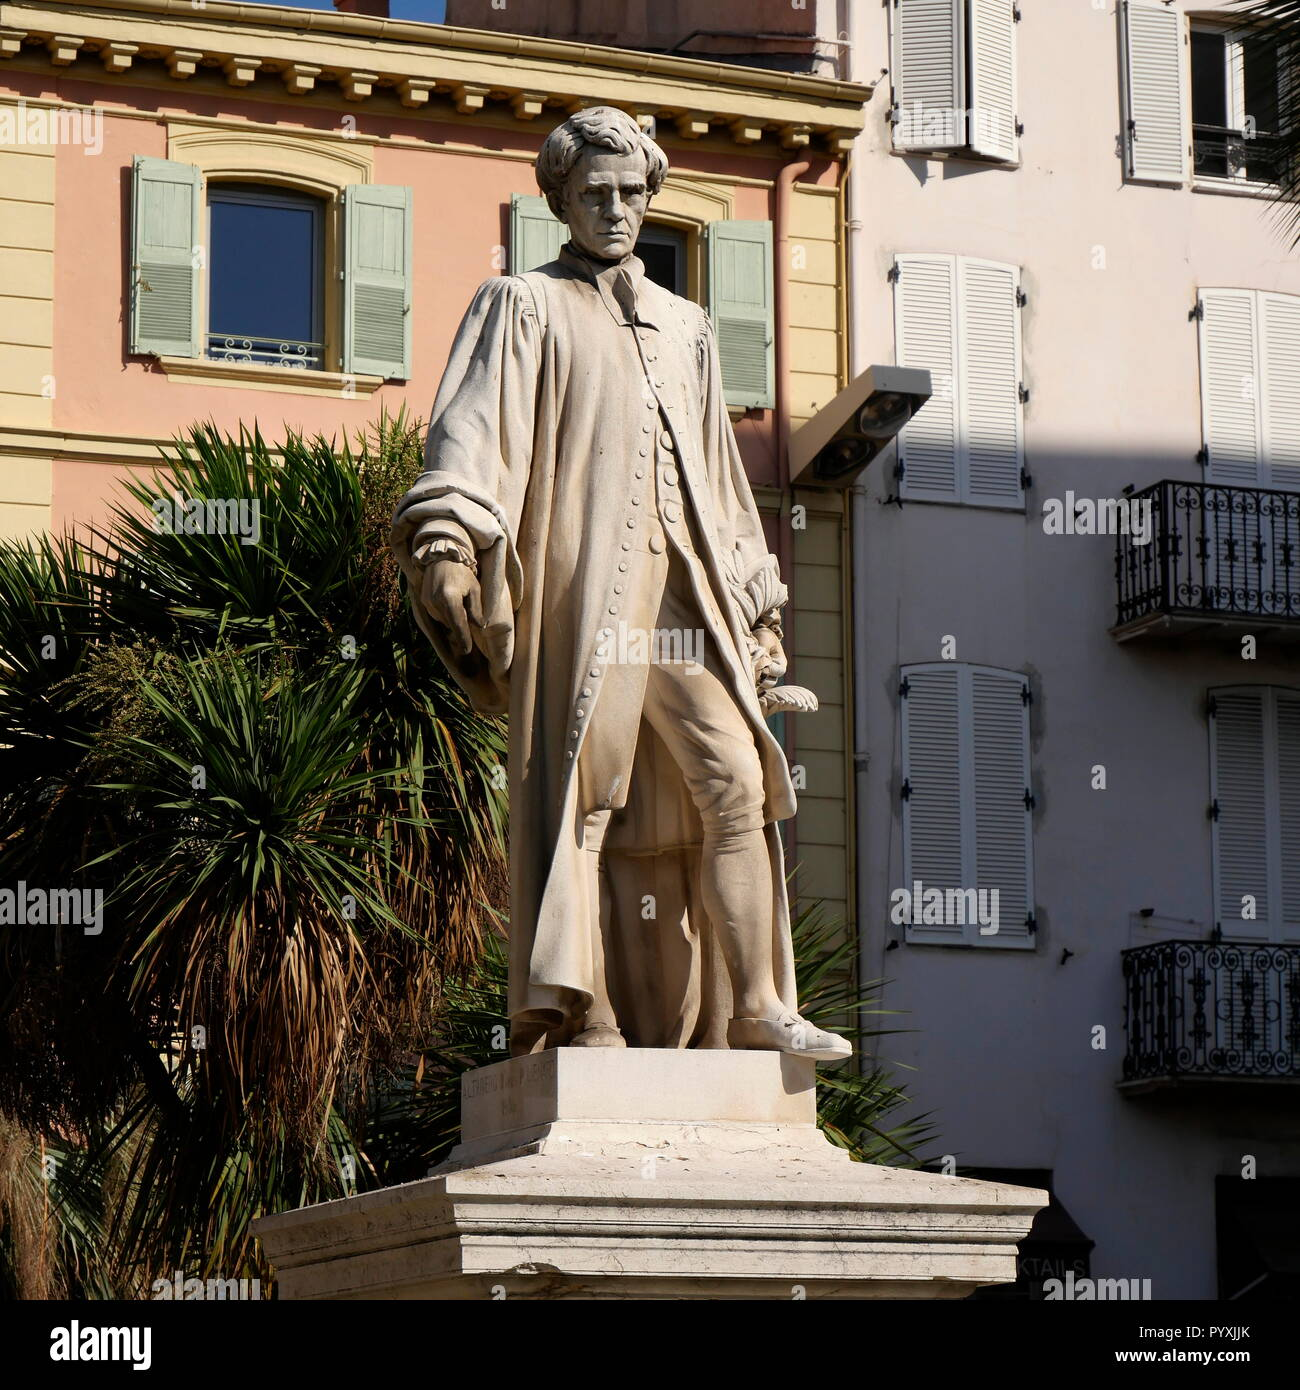 AJAXNETPHOTO. 2018. CANNES, FRANCE. - ENGLISH INFLUENCE - STATUE NEAR ALLEE DE LA LIBERTE OF ENGLISH ARISTOCRAT 1ST BARON LORD HENRY PETER BROUGHAM AND VAUX. PHOTO:JONATHAN EASTLAND/AJAX REF:GX8_182509_606 - Stock Image